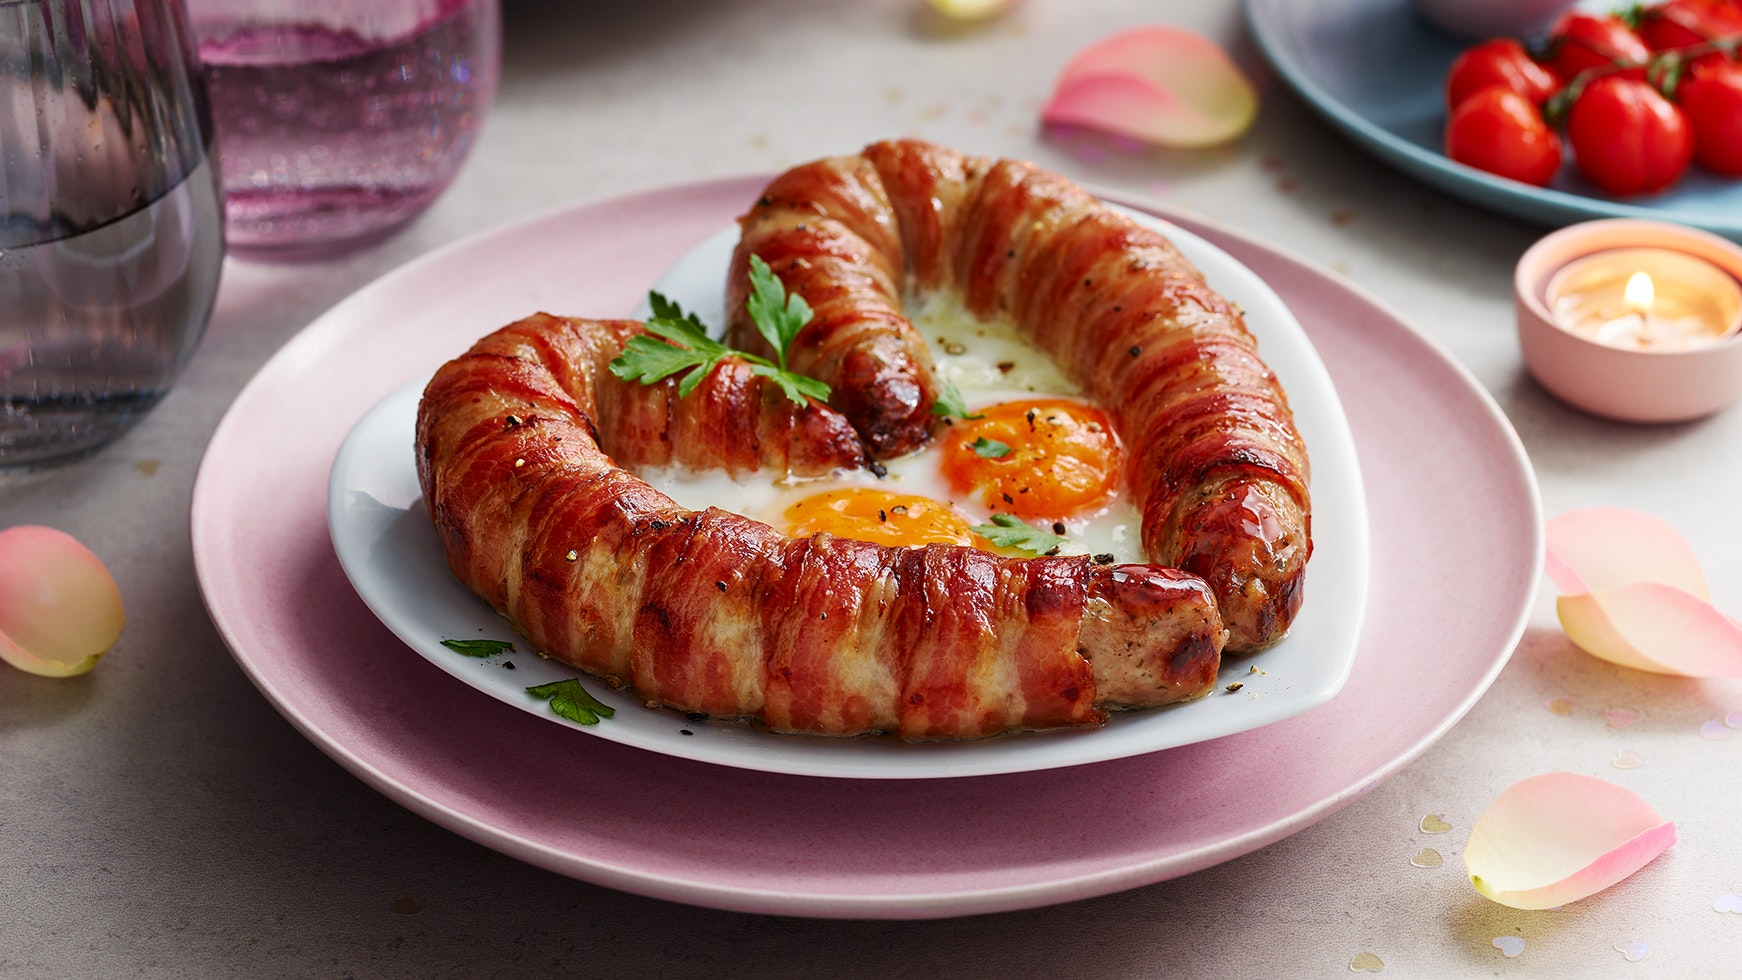 Shoppers get the giggles as M&S launches 'love sausage' for Valentine's Day